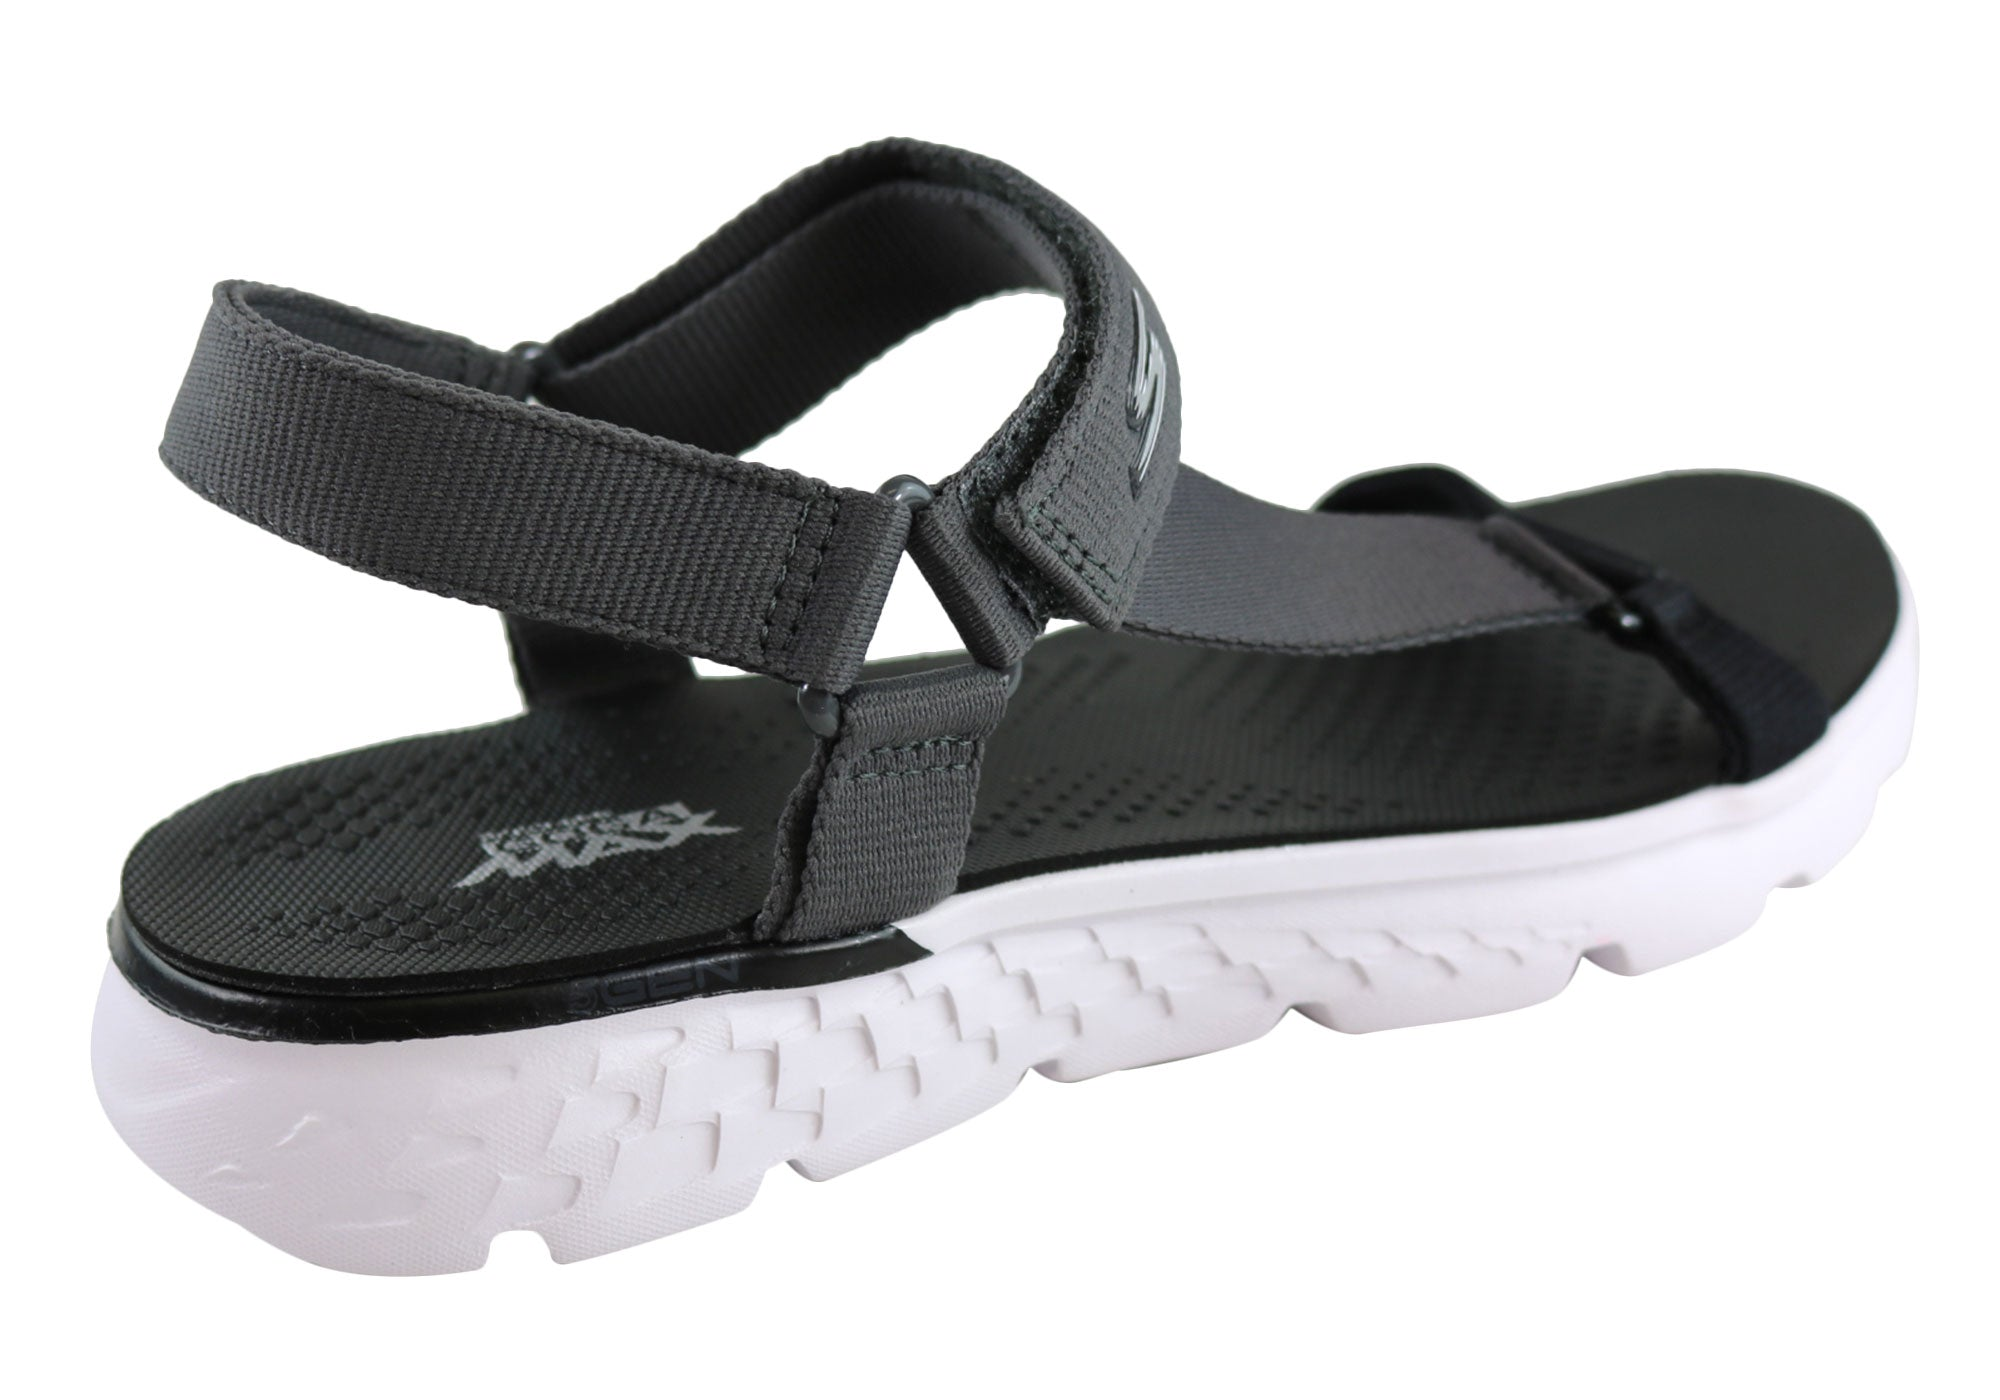 dcf1dfd36223 Home Skechers On The Go 400 Jazzy Womens Comfort Lightweight Sandals. Black Grey  · Black Grey · Black Grey · Black Grey · Black Grey ...